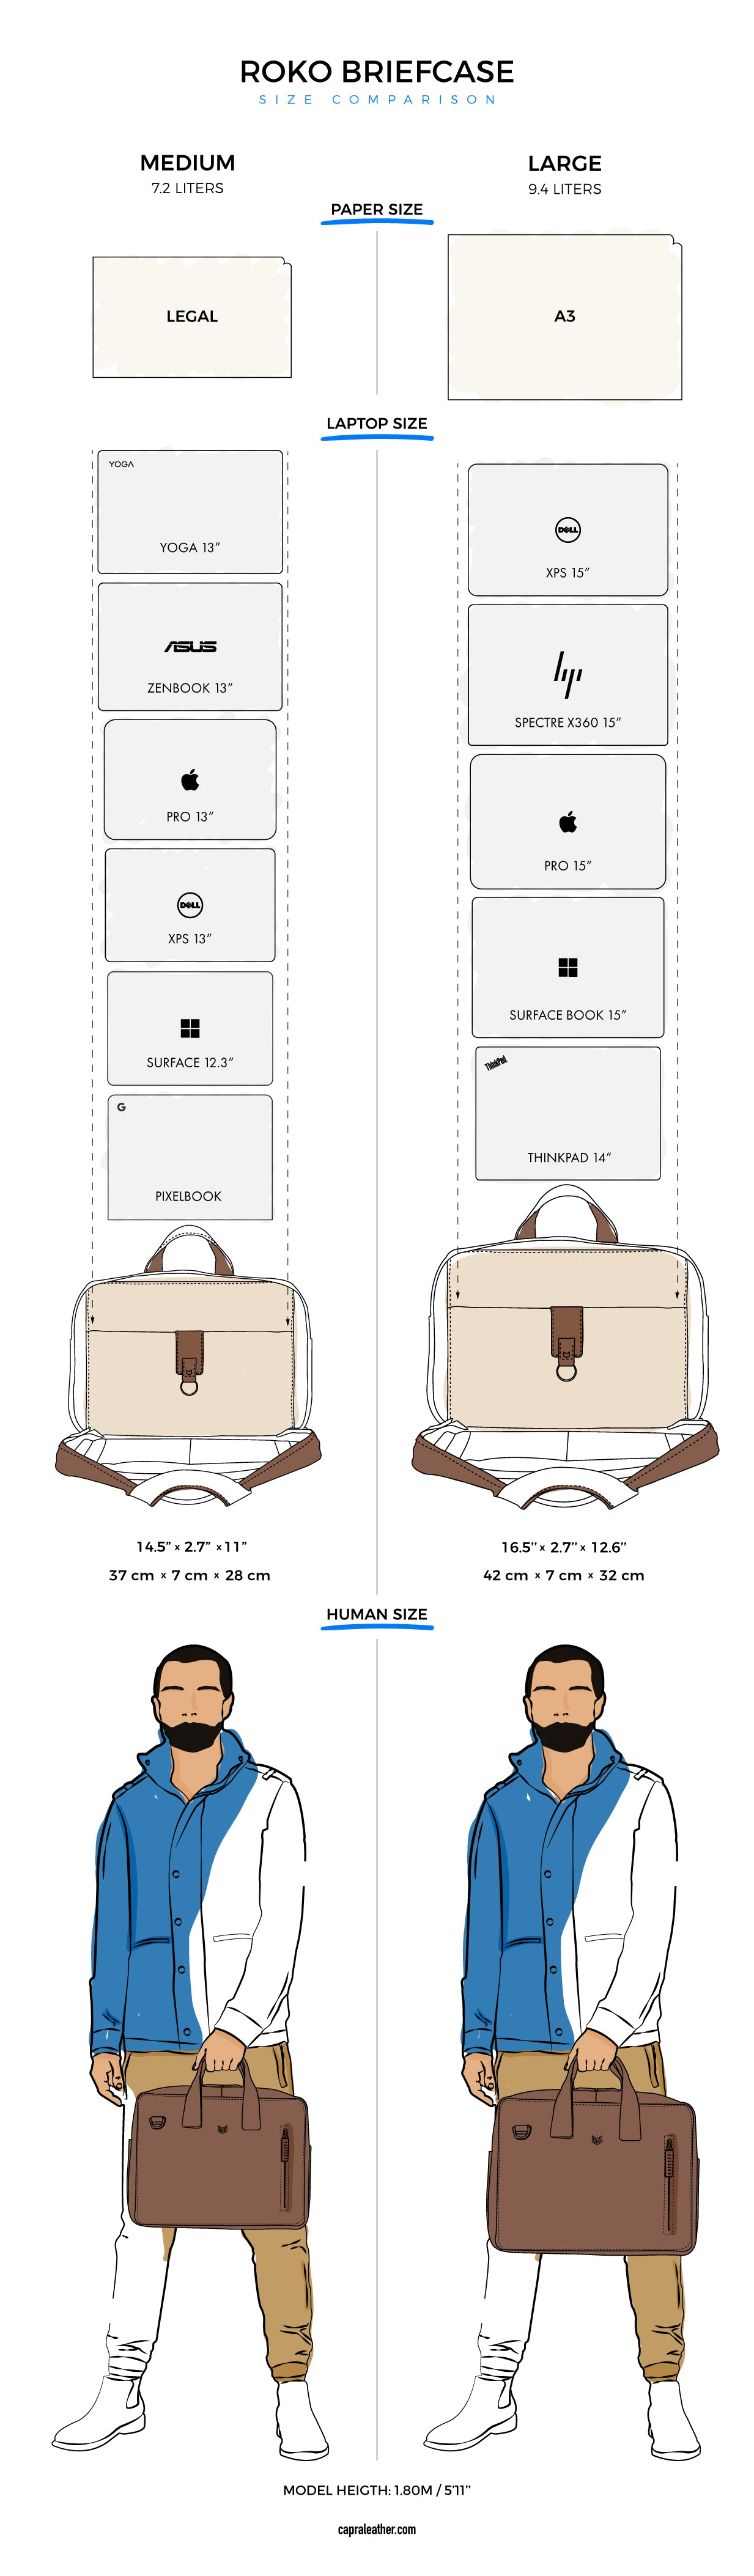 Roko Briefcase Size Chart